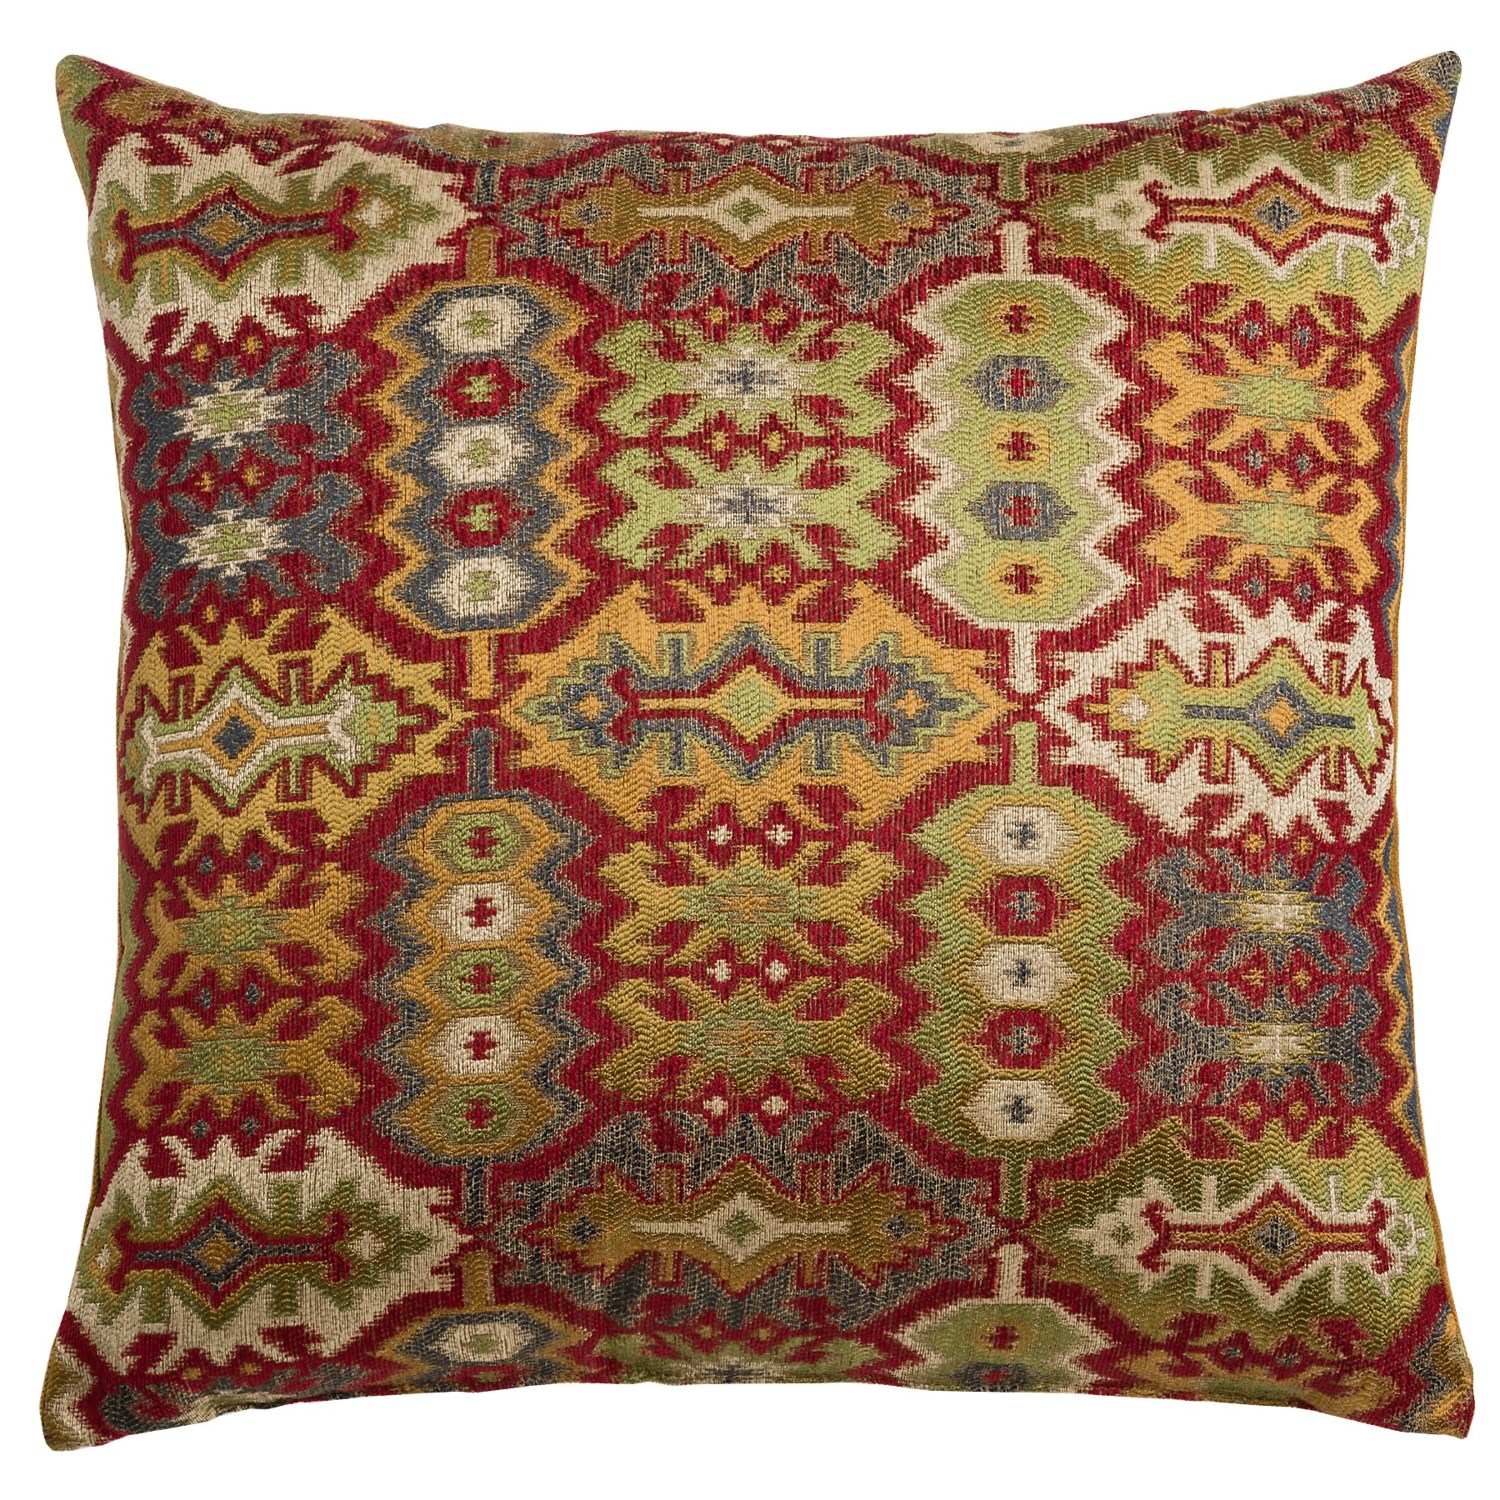 22x22 Decorative Pillows : Canaan Kedar Aztec Pattern Decorative Pillow - 22x22?, Feather-Down - Save 50%